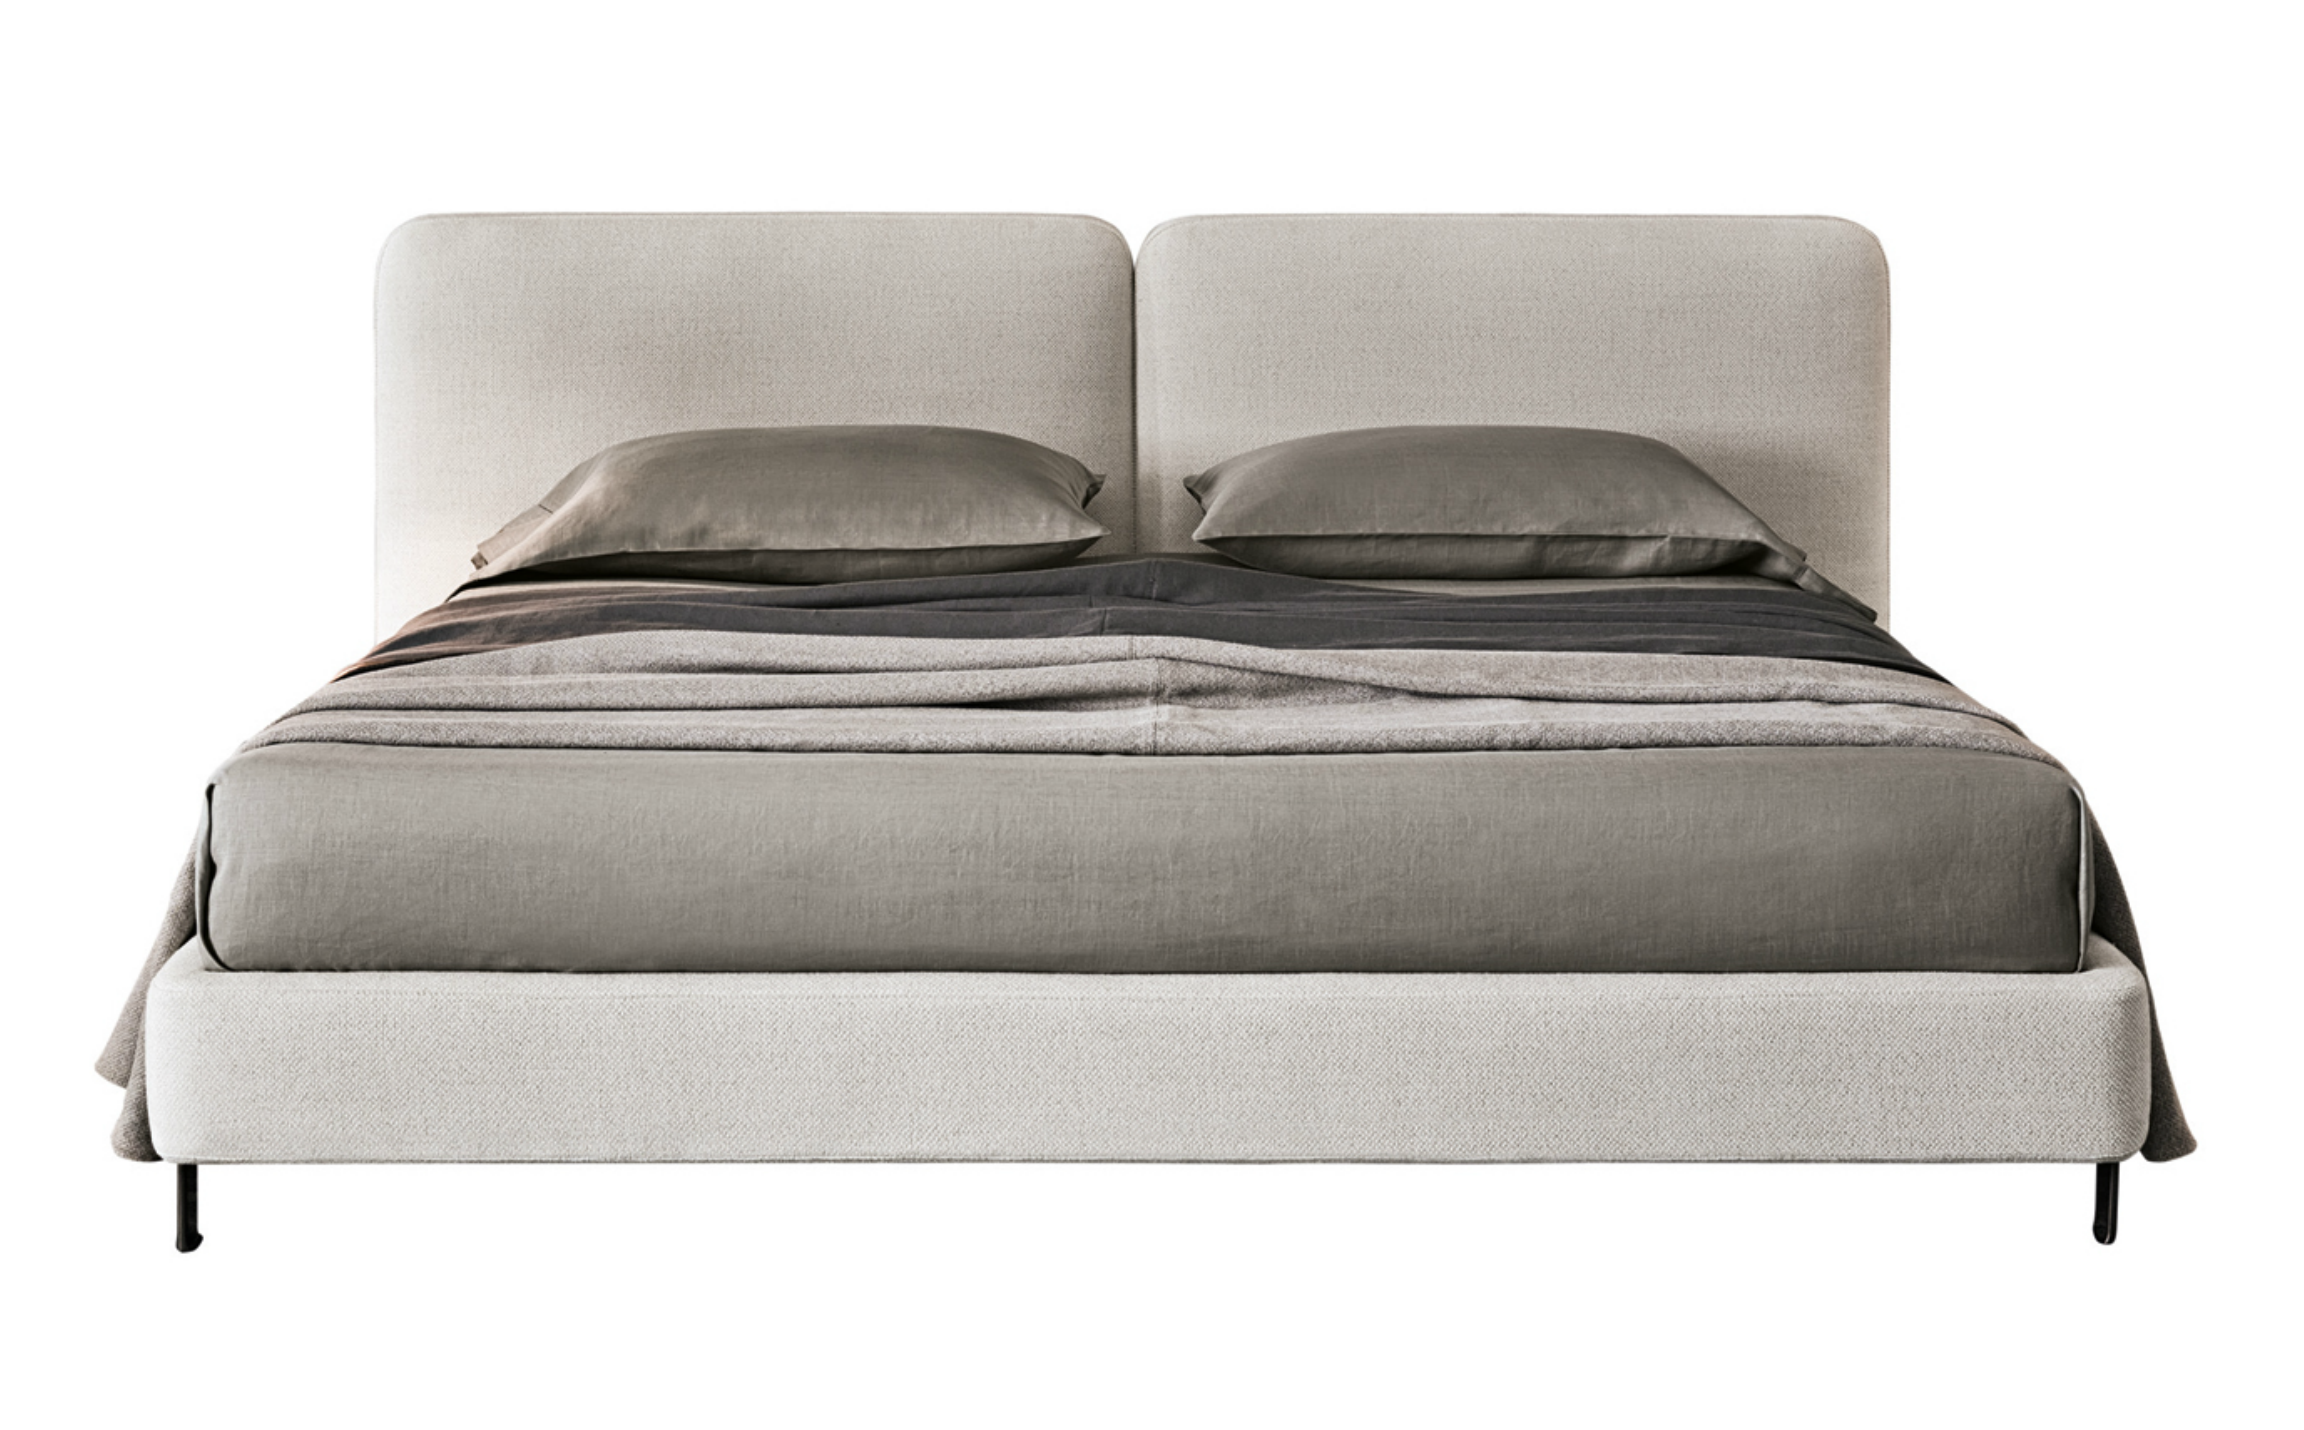 The Tatlin Bed Is All About Headboard With Details That Call To Mind Refined Luggage In Rounded Corners Sching And Lush Thickness